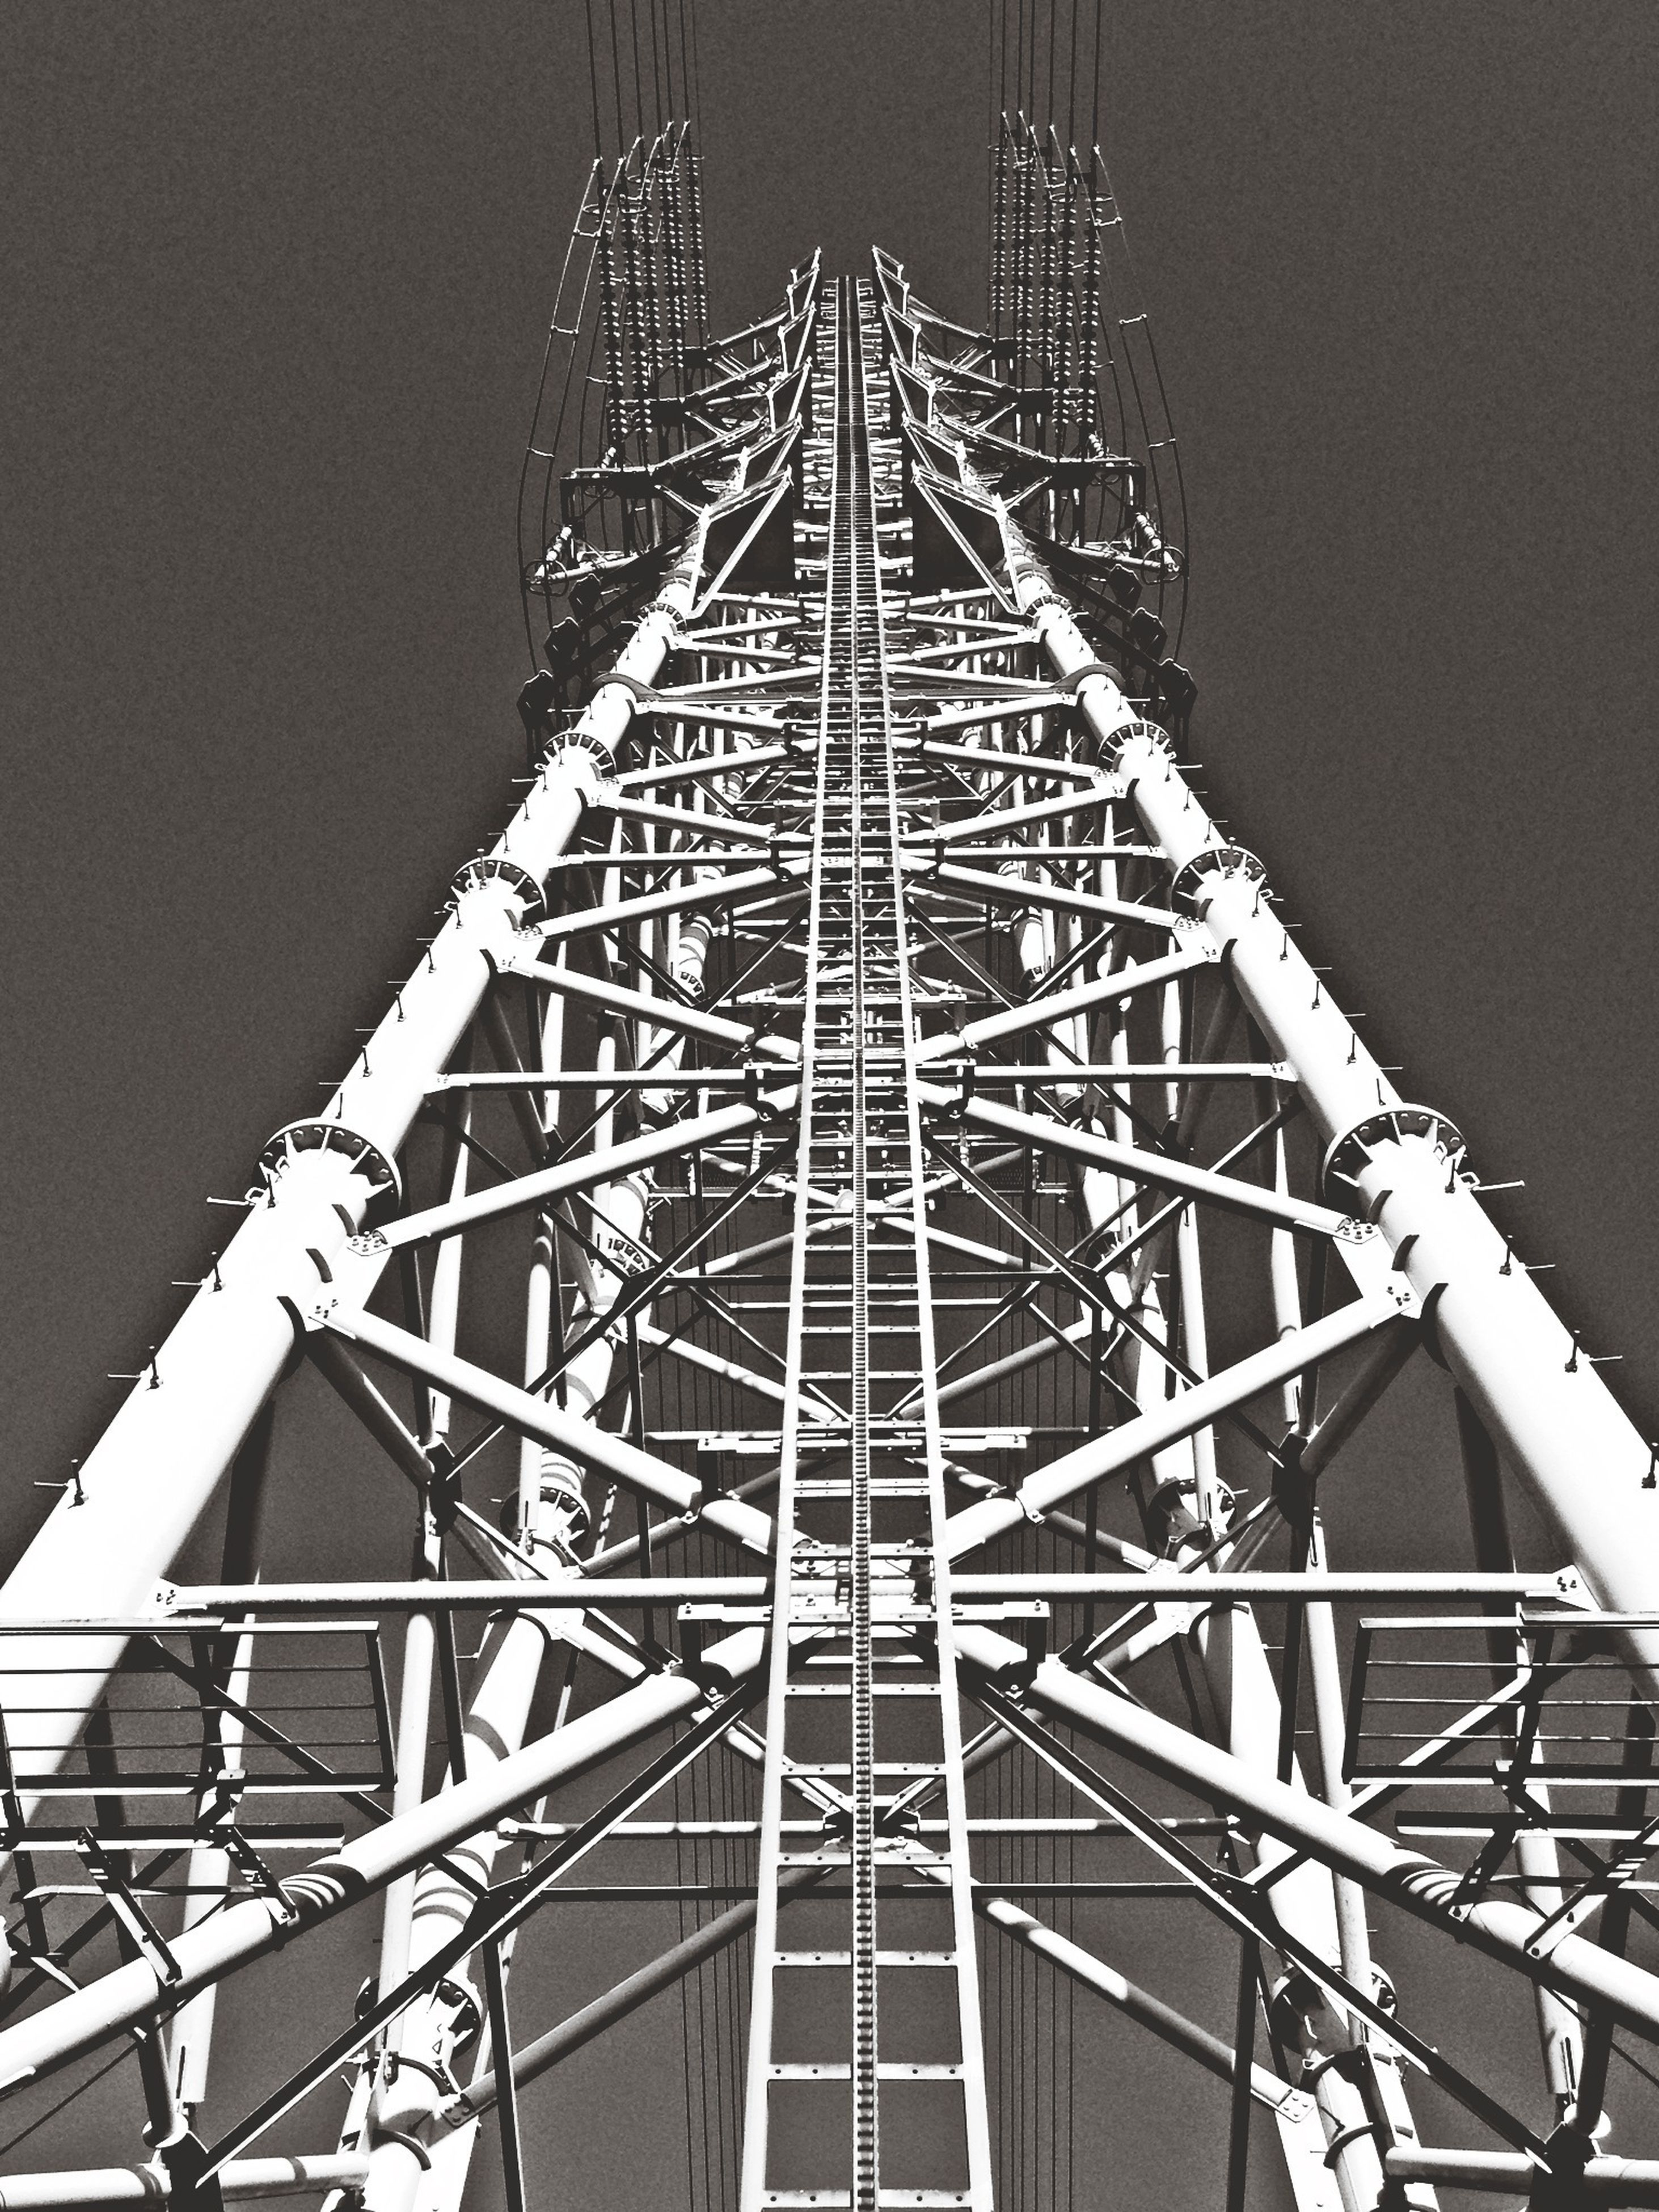 low angle view, clear sky, built structure, architecture, metal, tall - high, sky, metallic, connection, no people, outdoors, diminishing perspective, tower, copy space, day, technology, dusk, electricity, tall